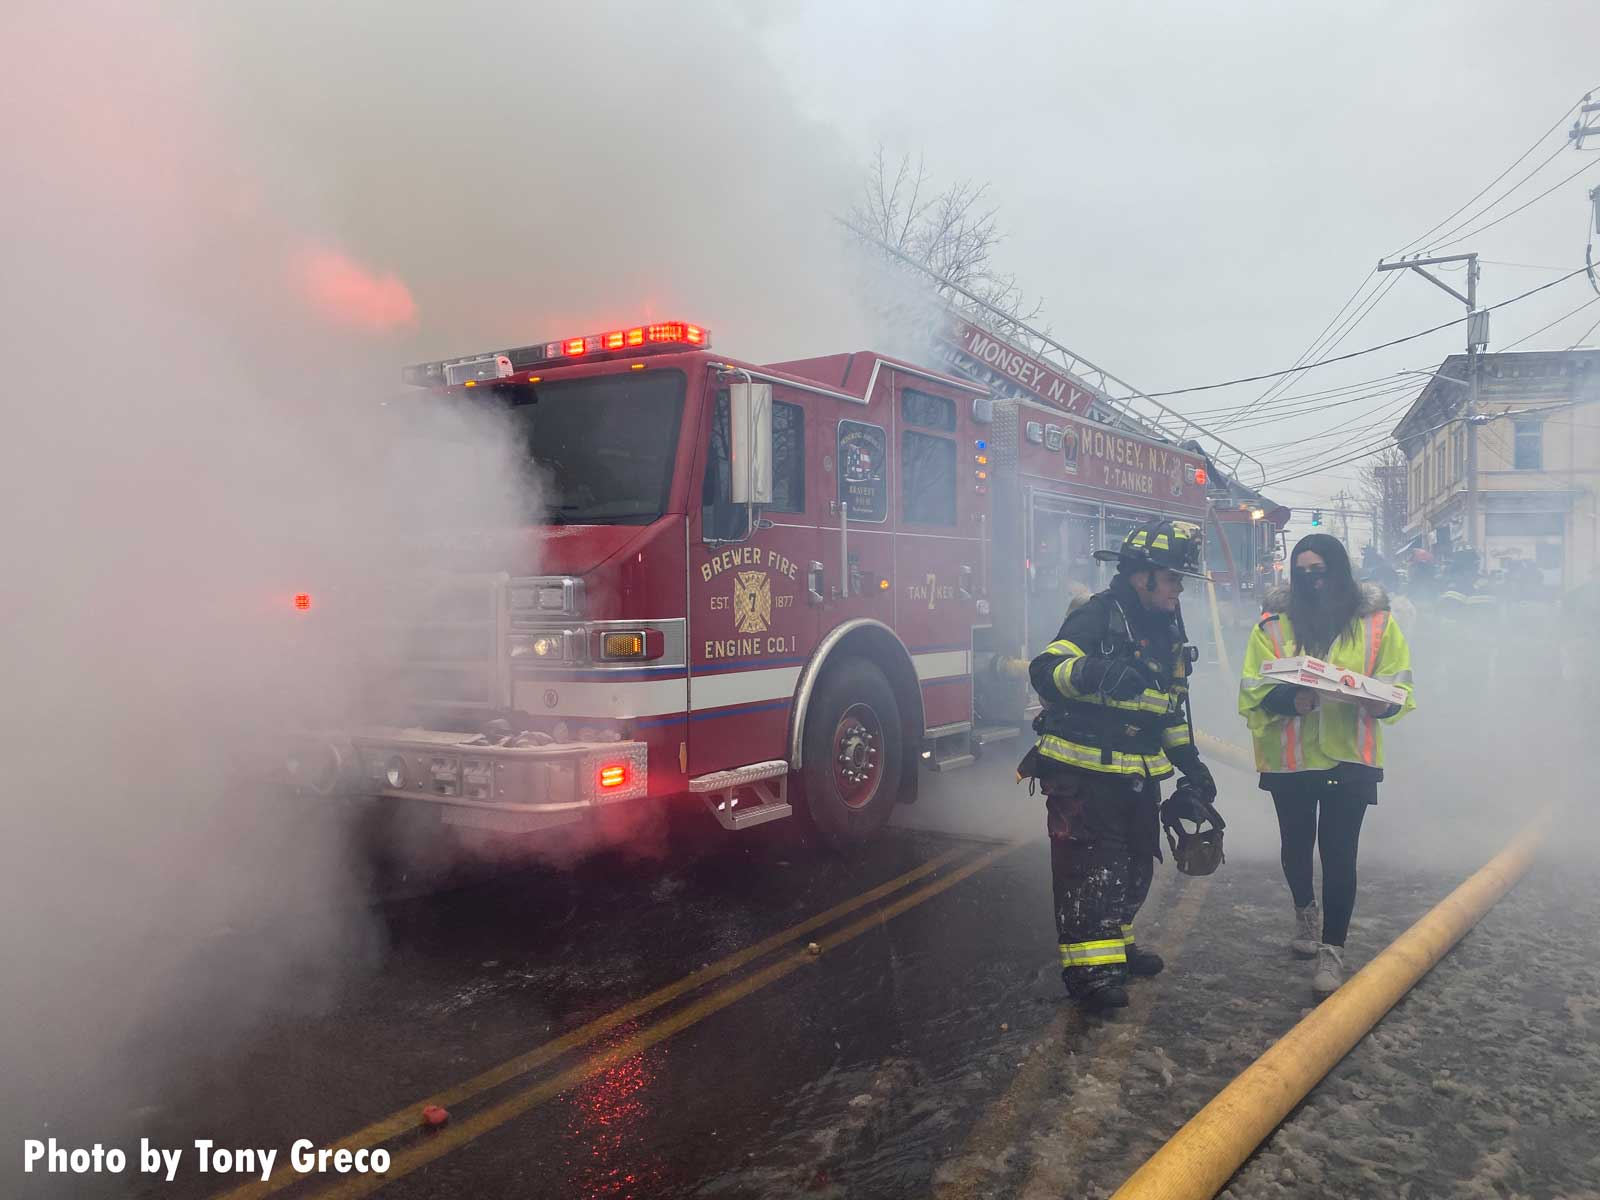 Firefighters at the scene of a Monsey fire, with rig partly enveloped by smoke